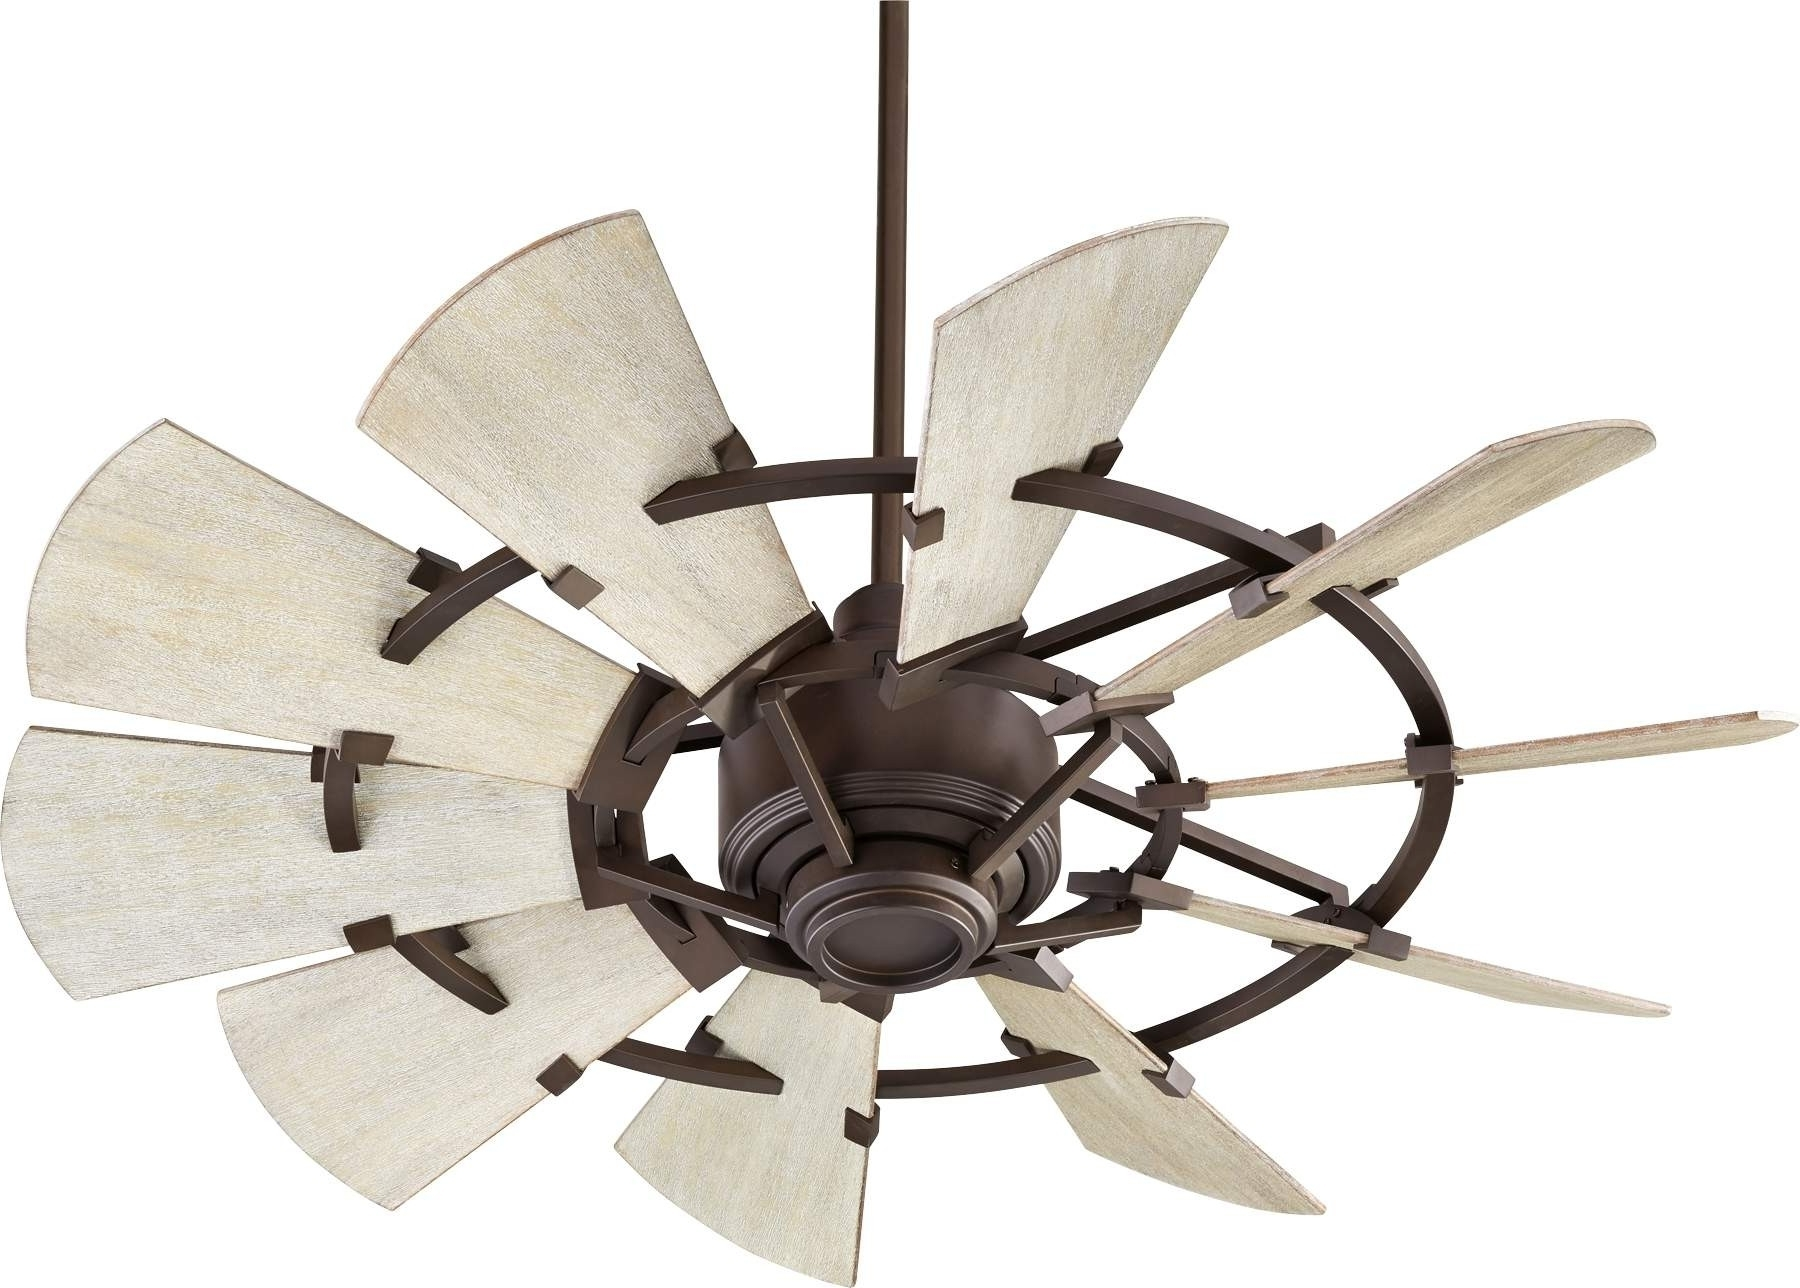 Outdoor Windmill Ceiling Fans With Light Within Trendy Quorum Windmill Ceiling Fan Model 194410 86 In Oiled Bronze (View 18 of 20)